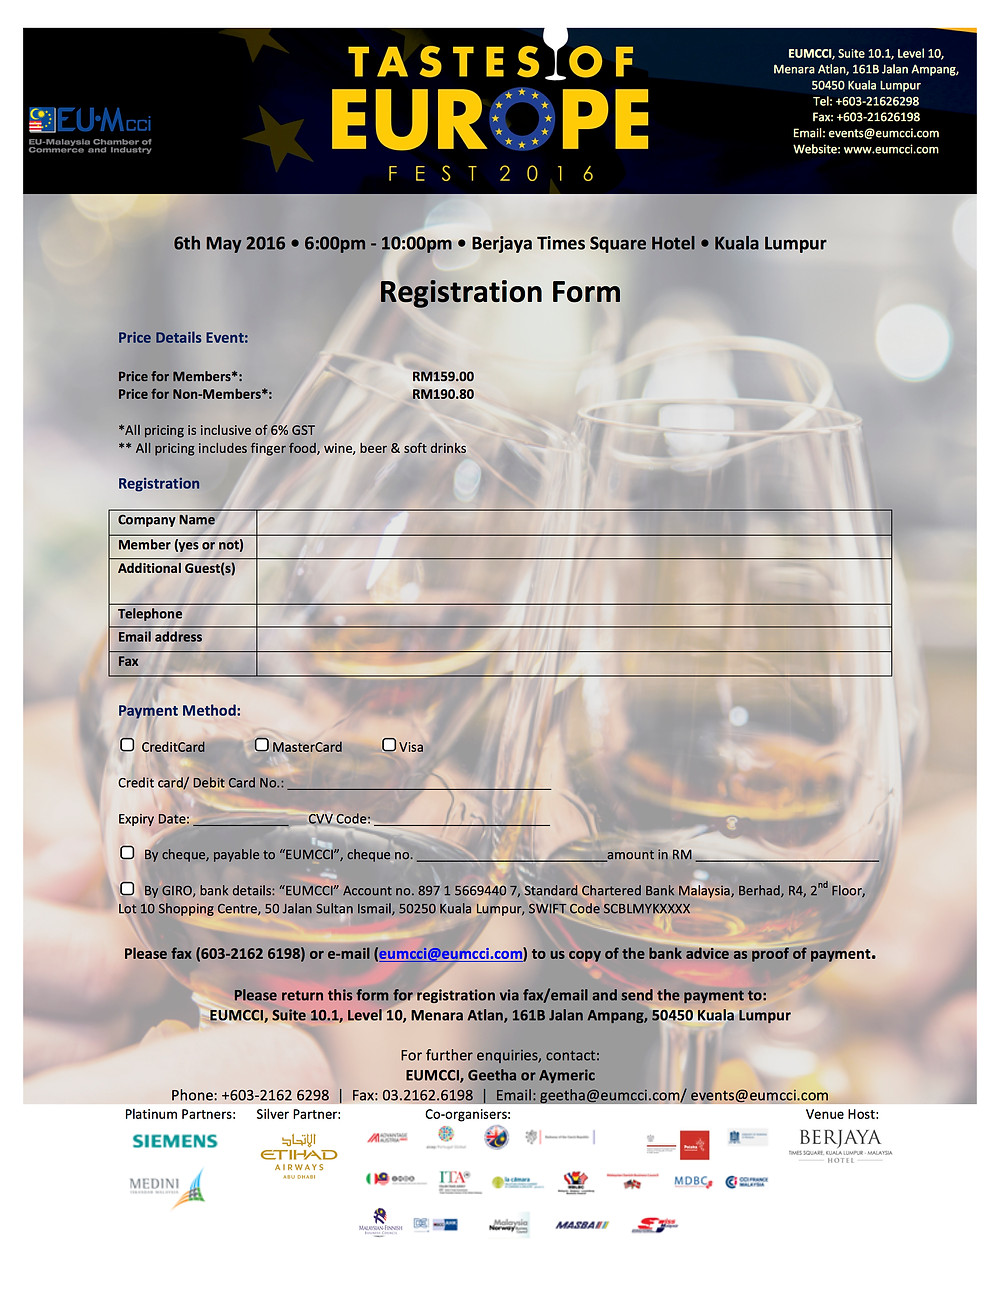 Tastes of Europe Fest -registration form